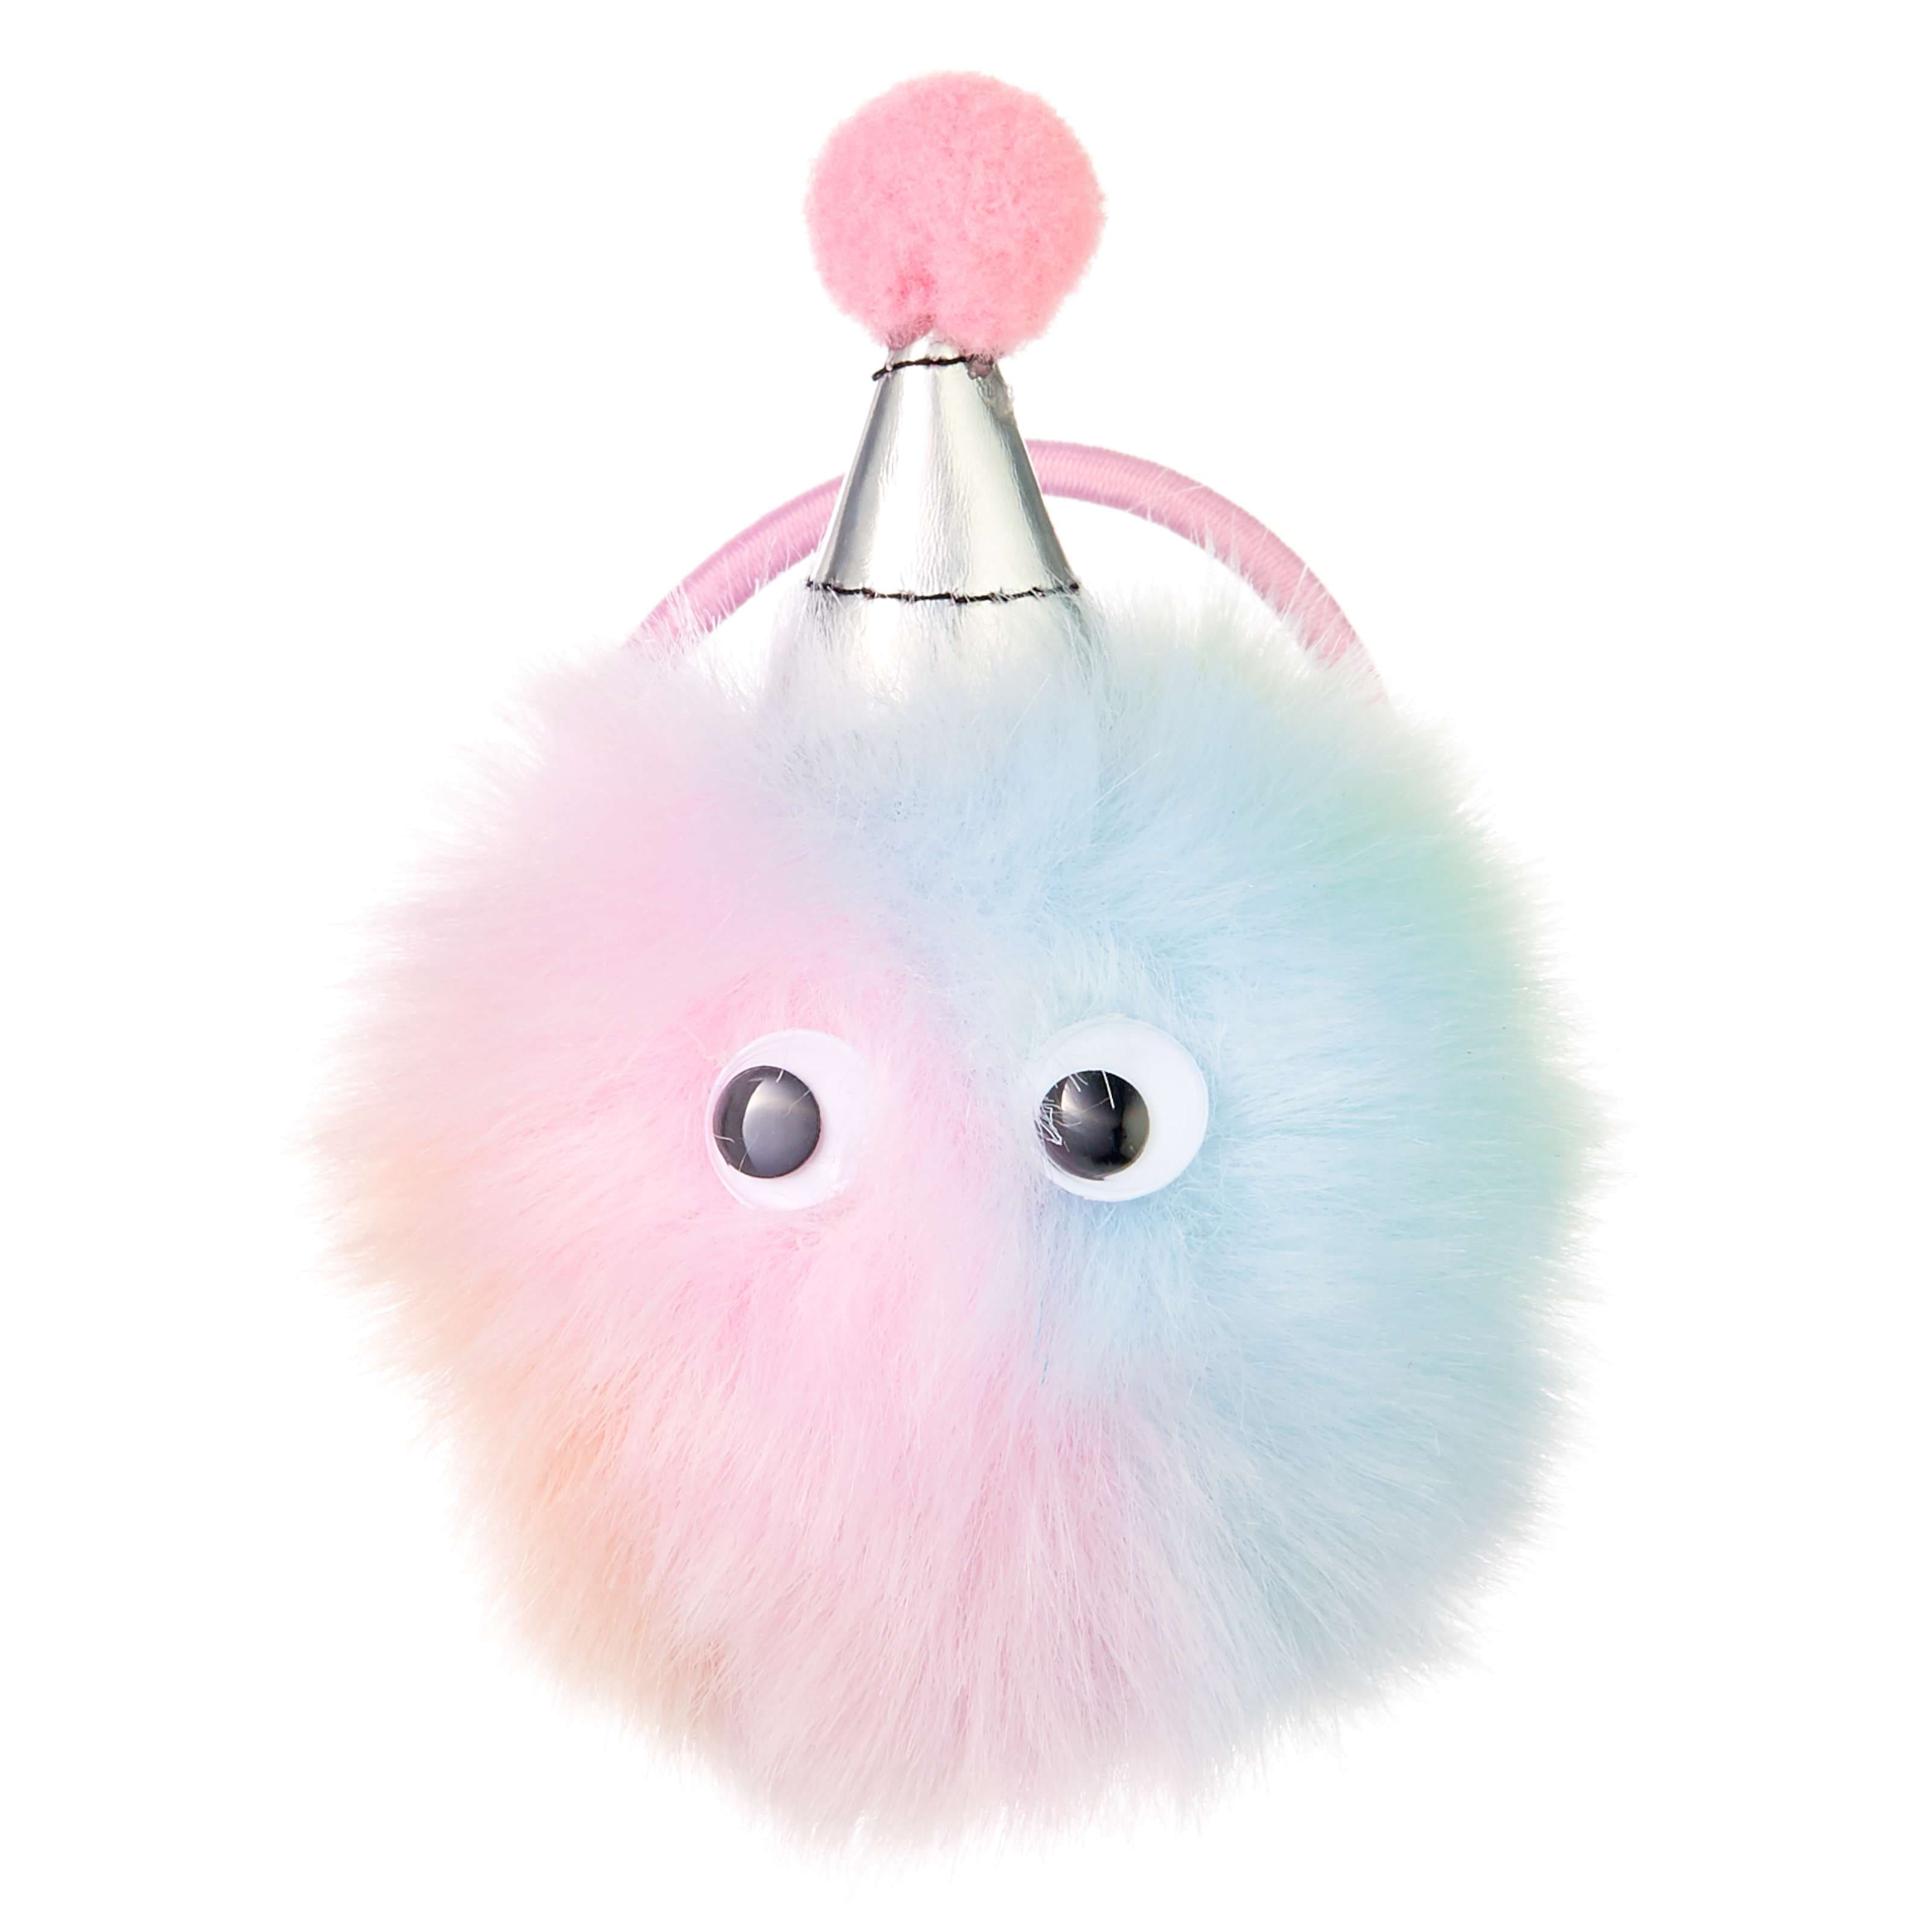 ... Image for Smile Pom Pom Fun Hair Ties from Smiggle d1a1043341f